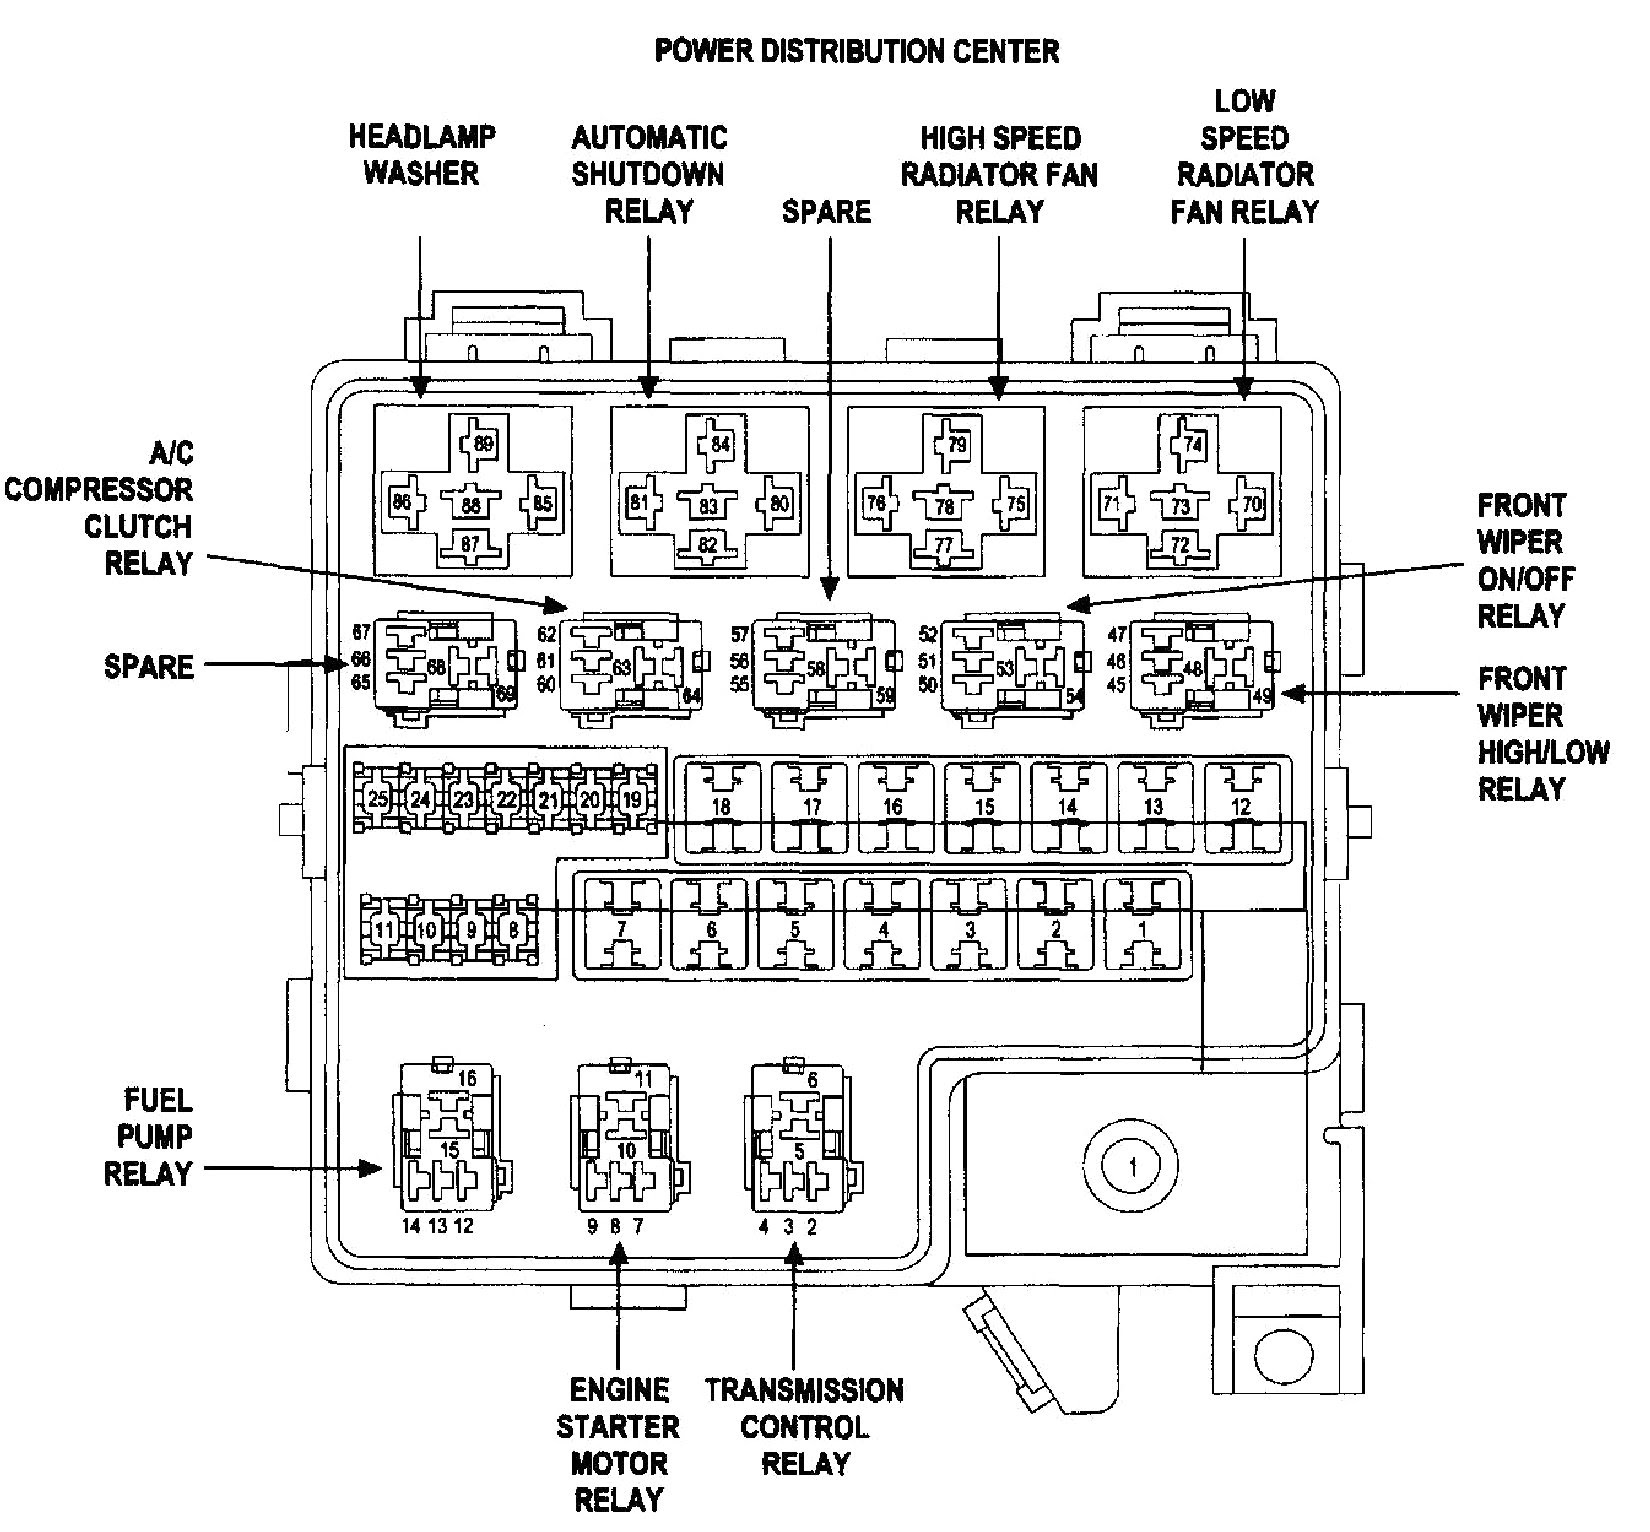 Wiring Diagram PDF: 2003 Dodge Stratus Fuse Box Under Hood